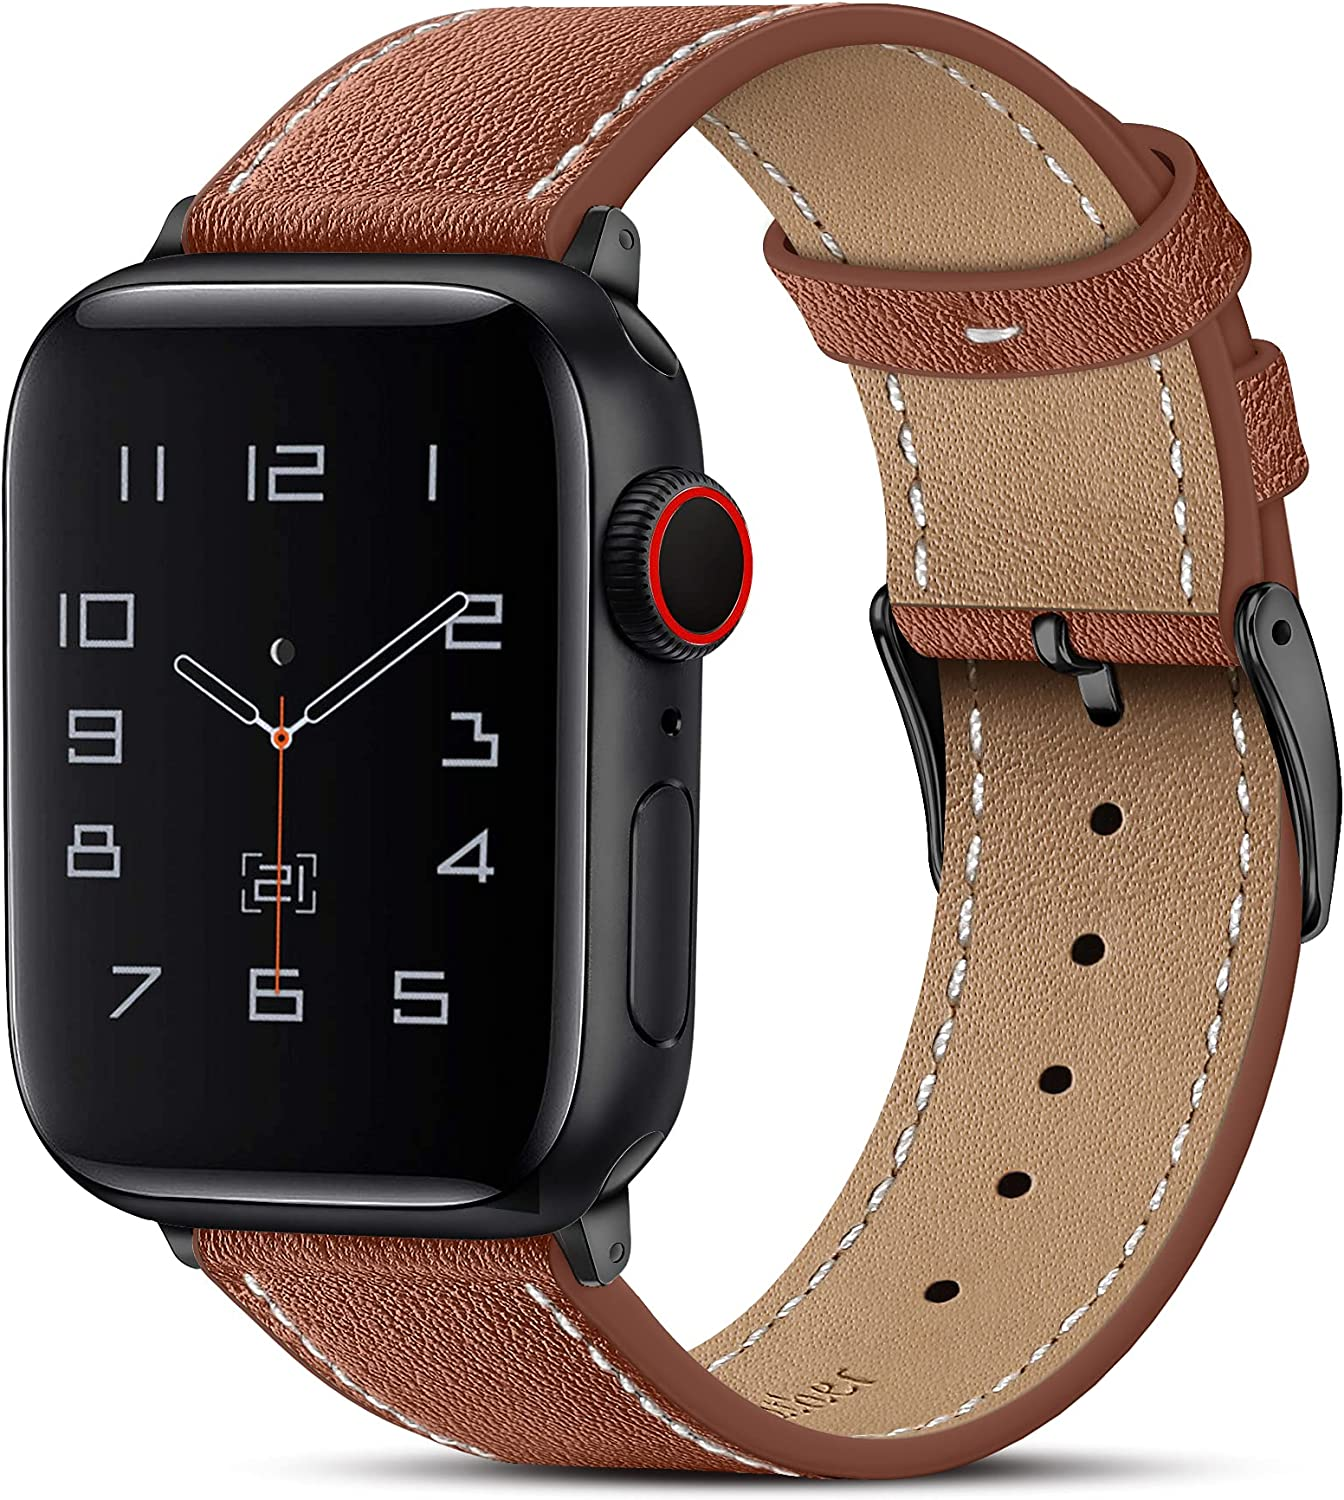 Marge Plus Compatible with Apple Watch Band 44mm 42mm 40mm 38mm, Genuine Leather Replacement Band for iWatch Series 6 5 4 3 2 1, SE (Retro Brown/Black, 44mm/42mm)